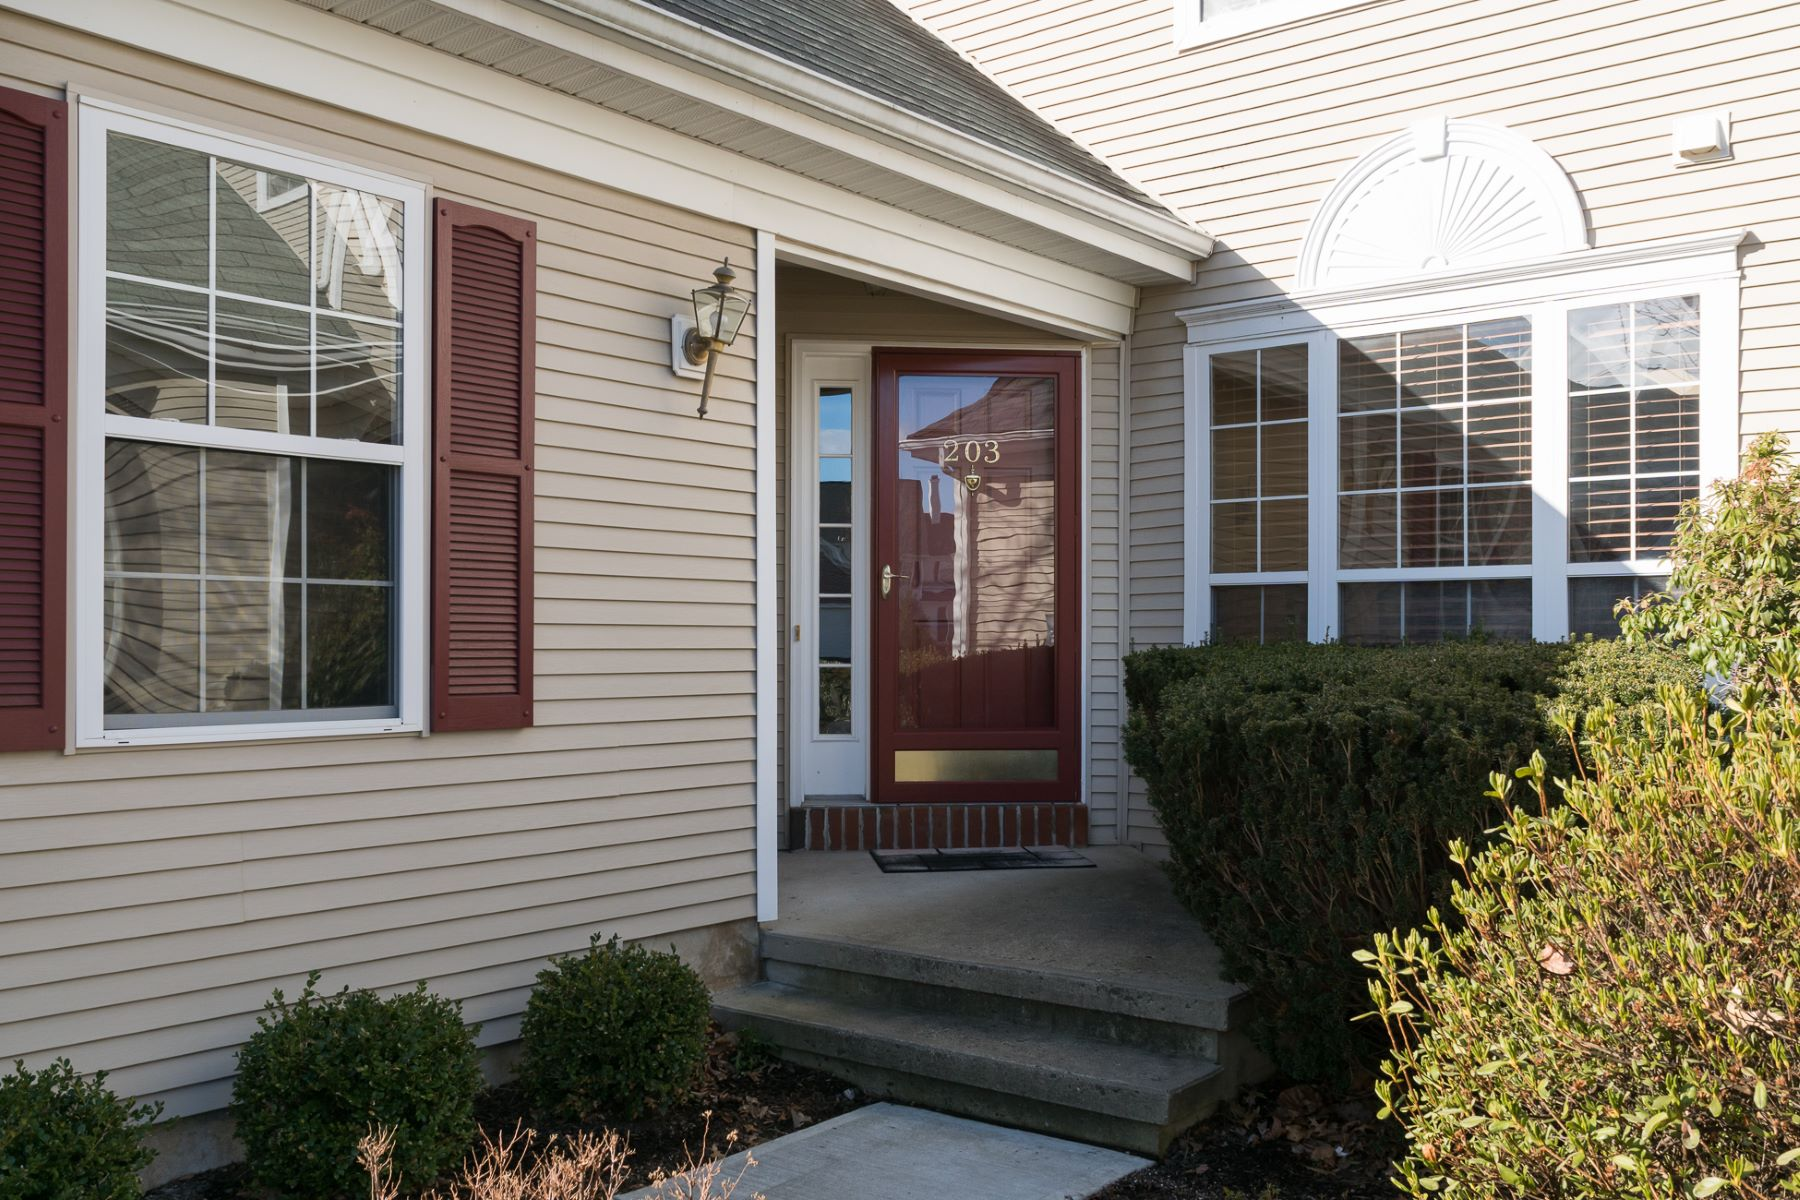 townhouses for Sale at Move-In Ready In Twin Pines 203 Colt Street, Pennington, New Jersey 08534 United States